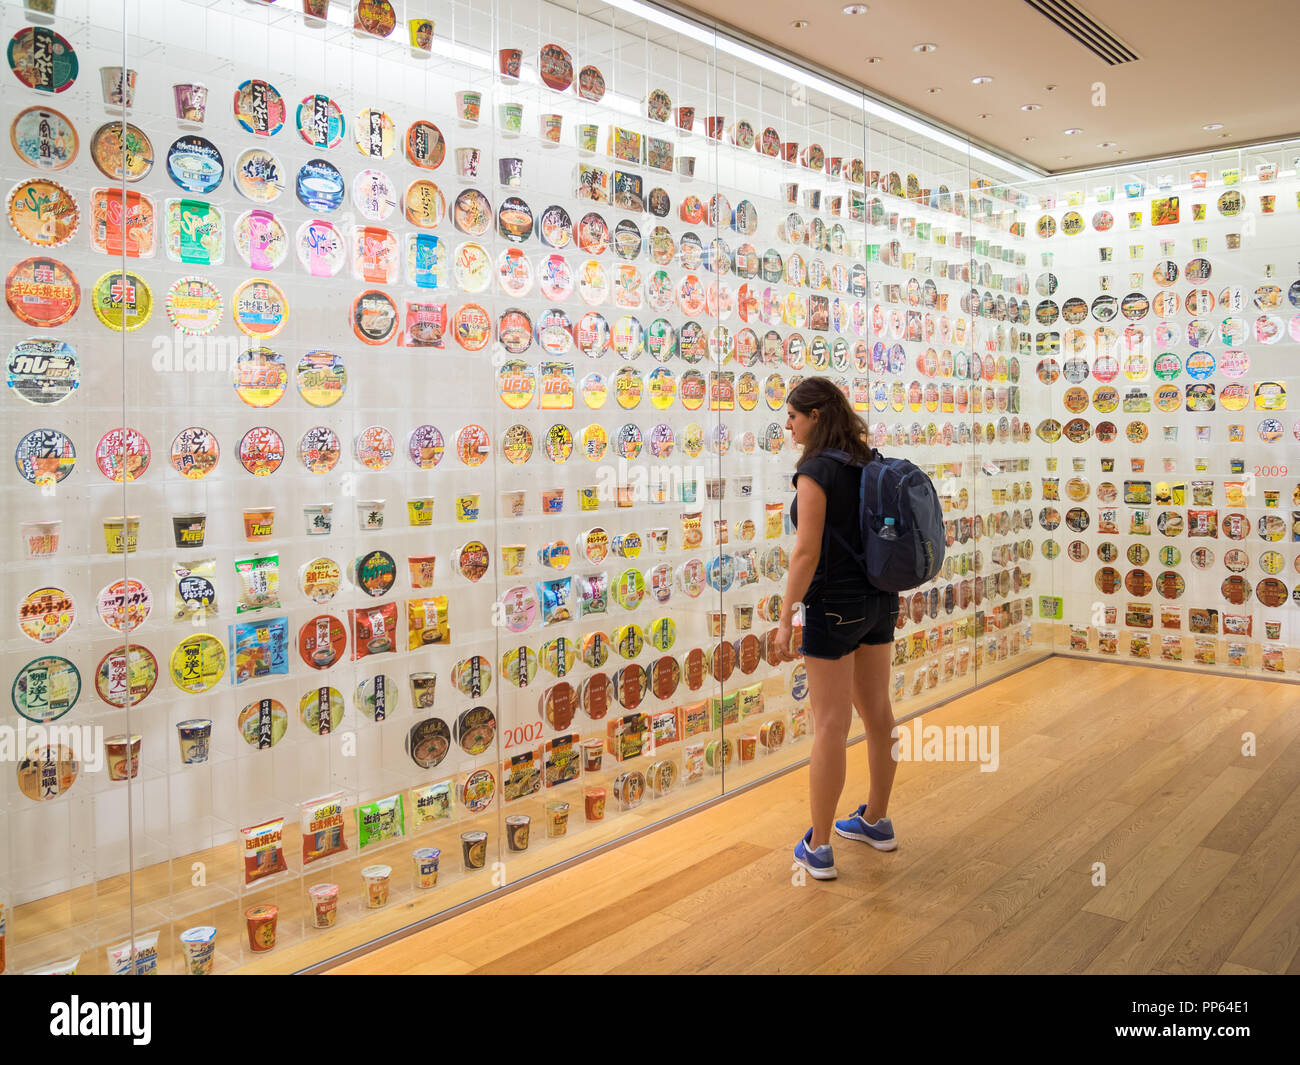 The Instant Noodles History Cube exhibit at the Cupnoodles Museum (Momofuku Ando Instant Noodles Museum) in Yokohama, Japan. - Stock Image